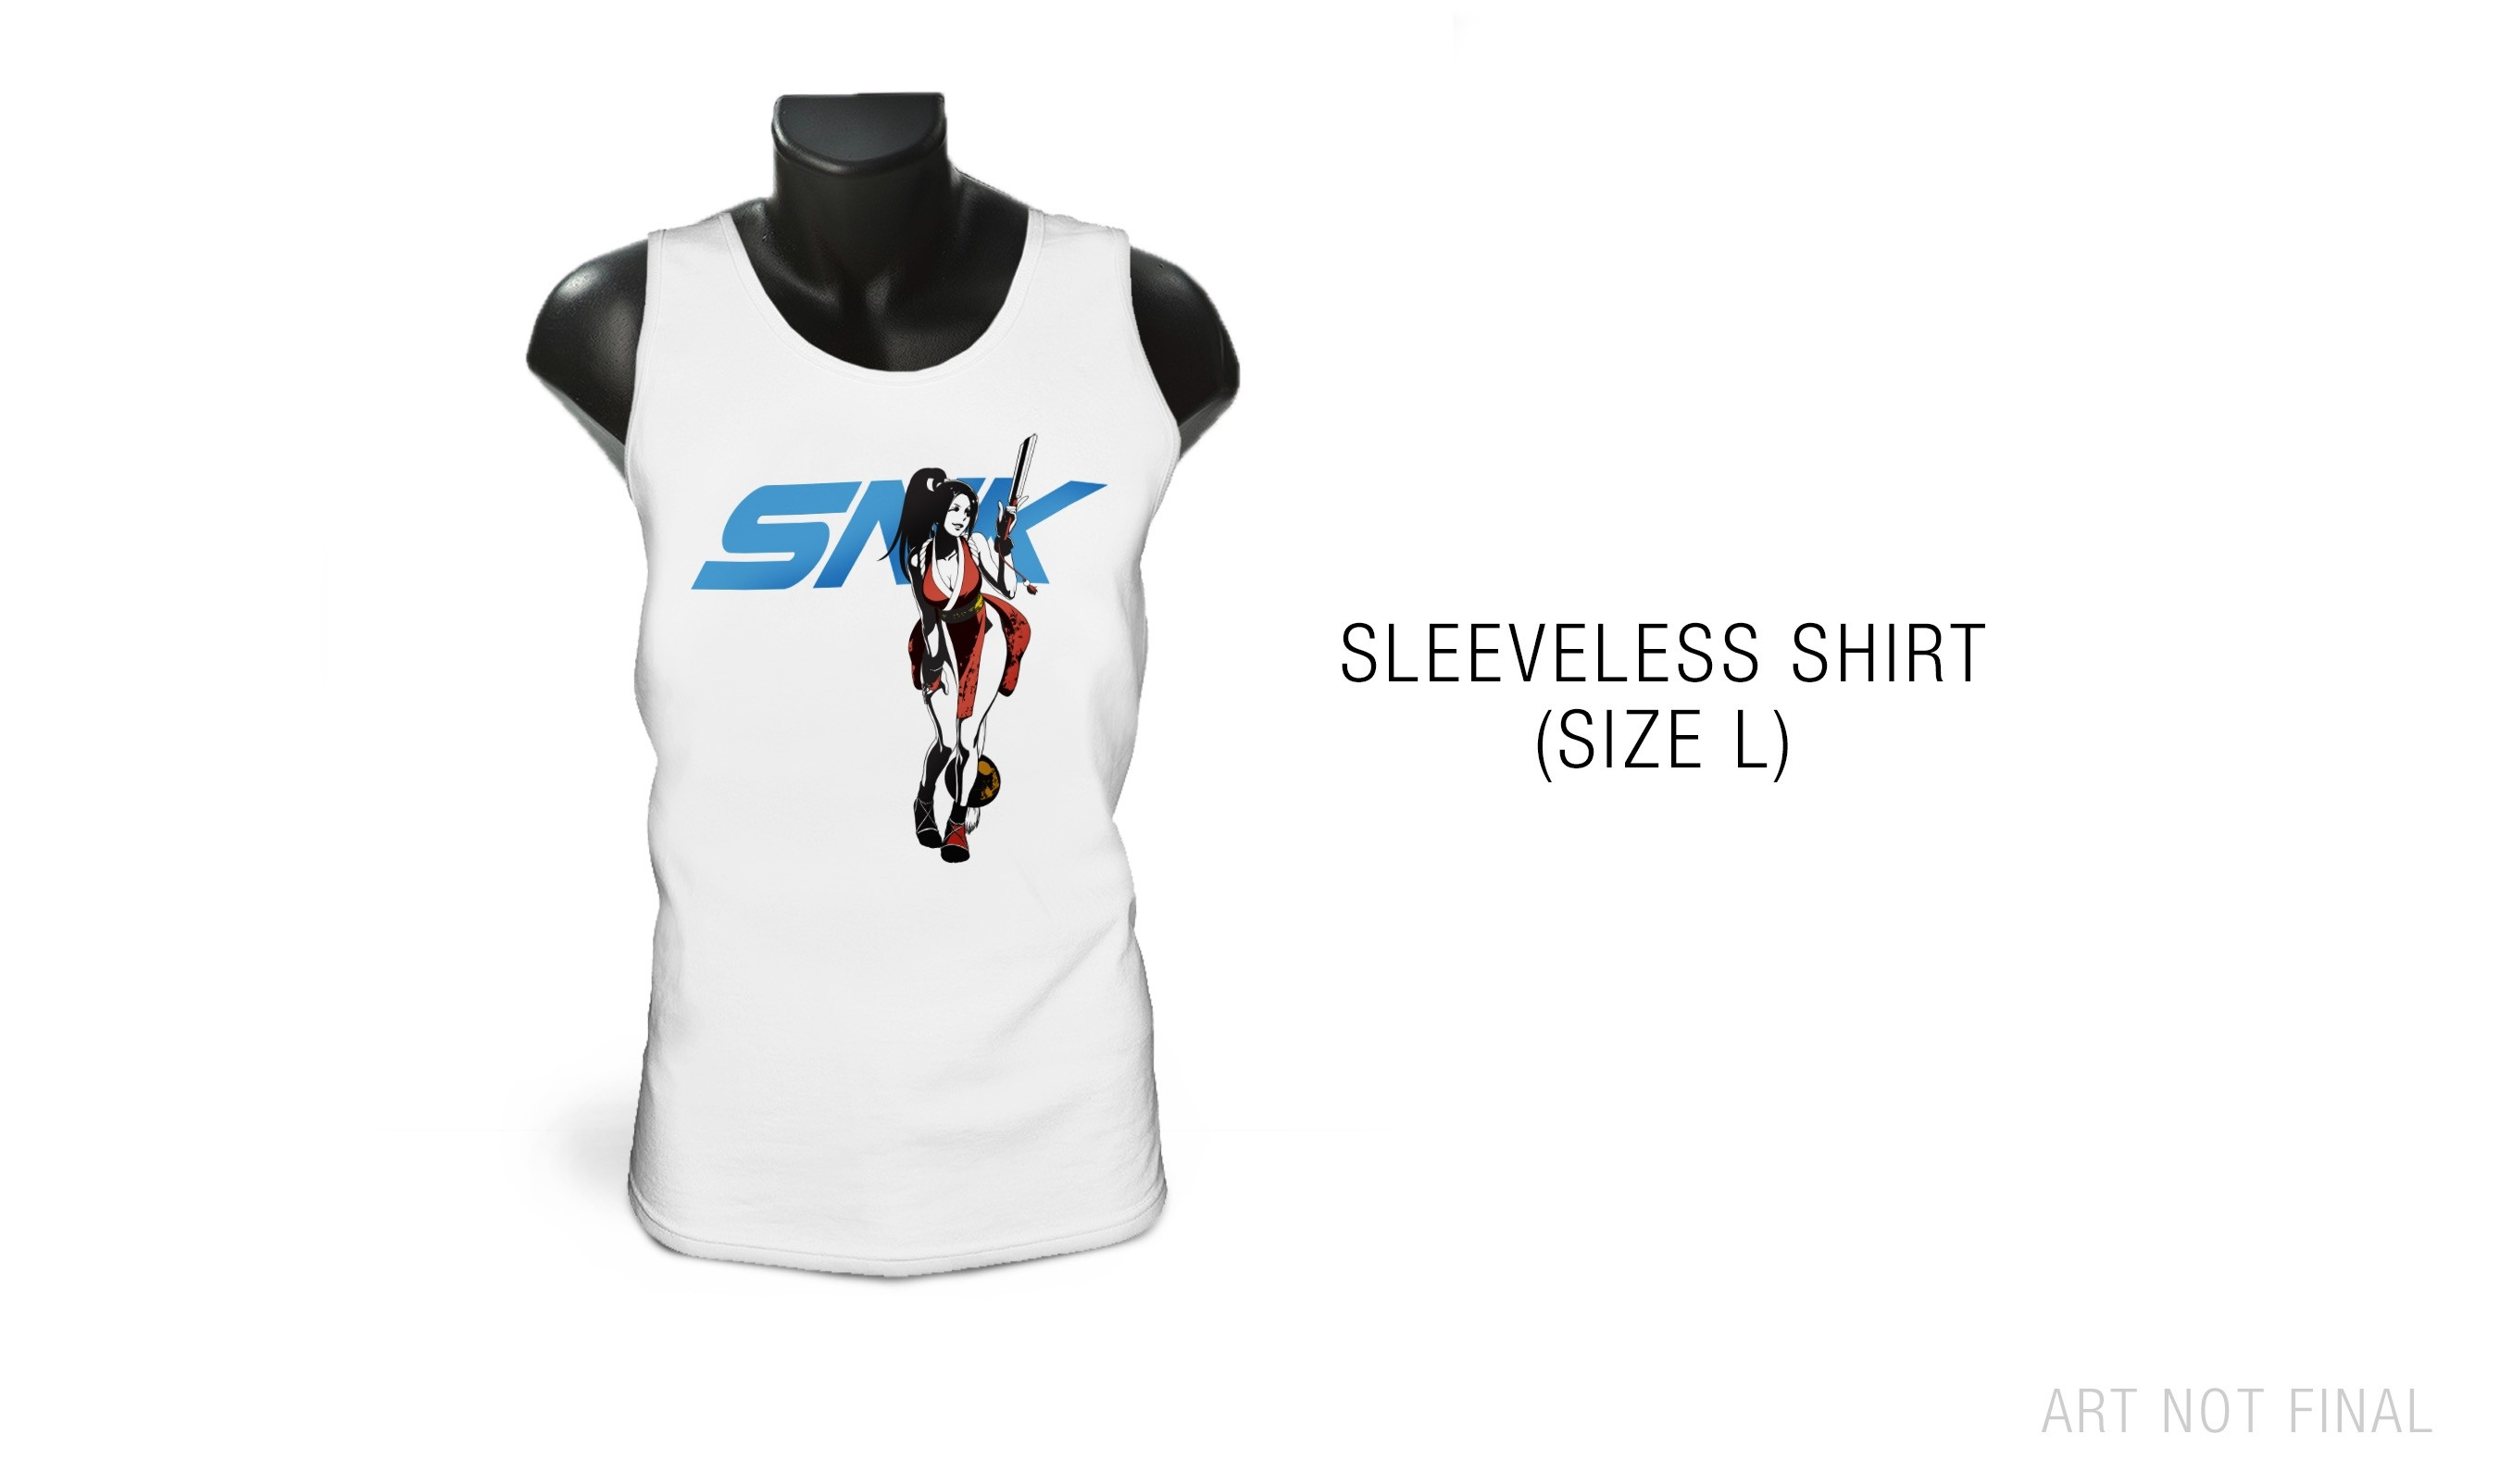 snk-heroines-tag-team-frenzy-sleeveless-shirt-photo